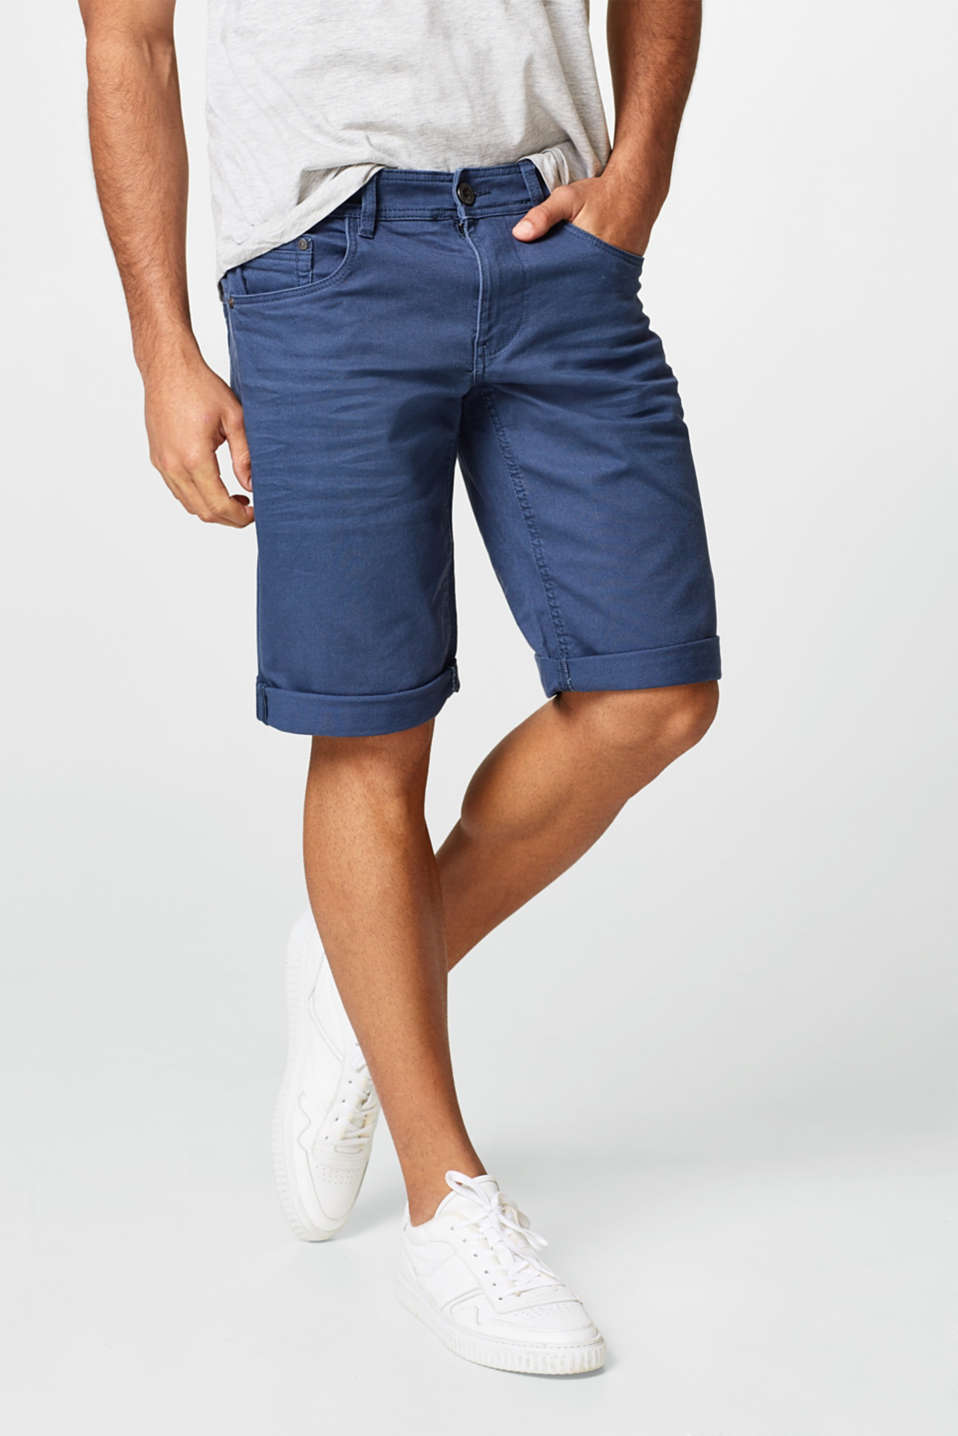 edc - Stretch denim shorts with a slim fit